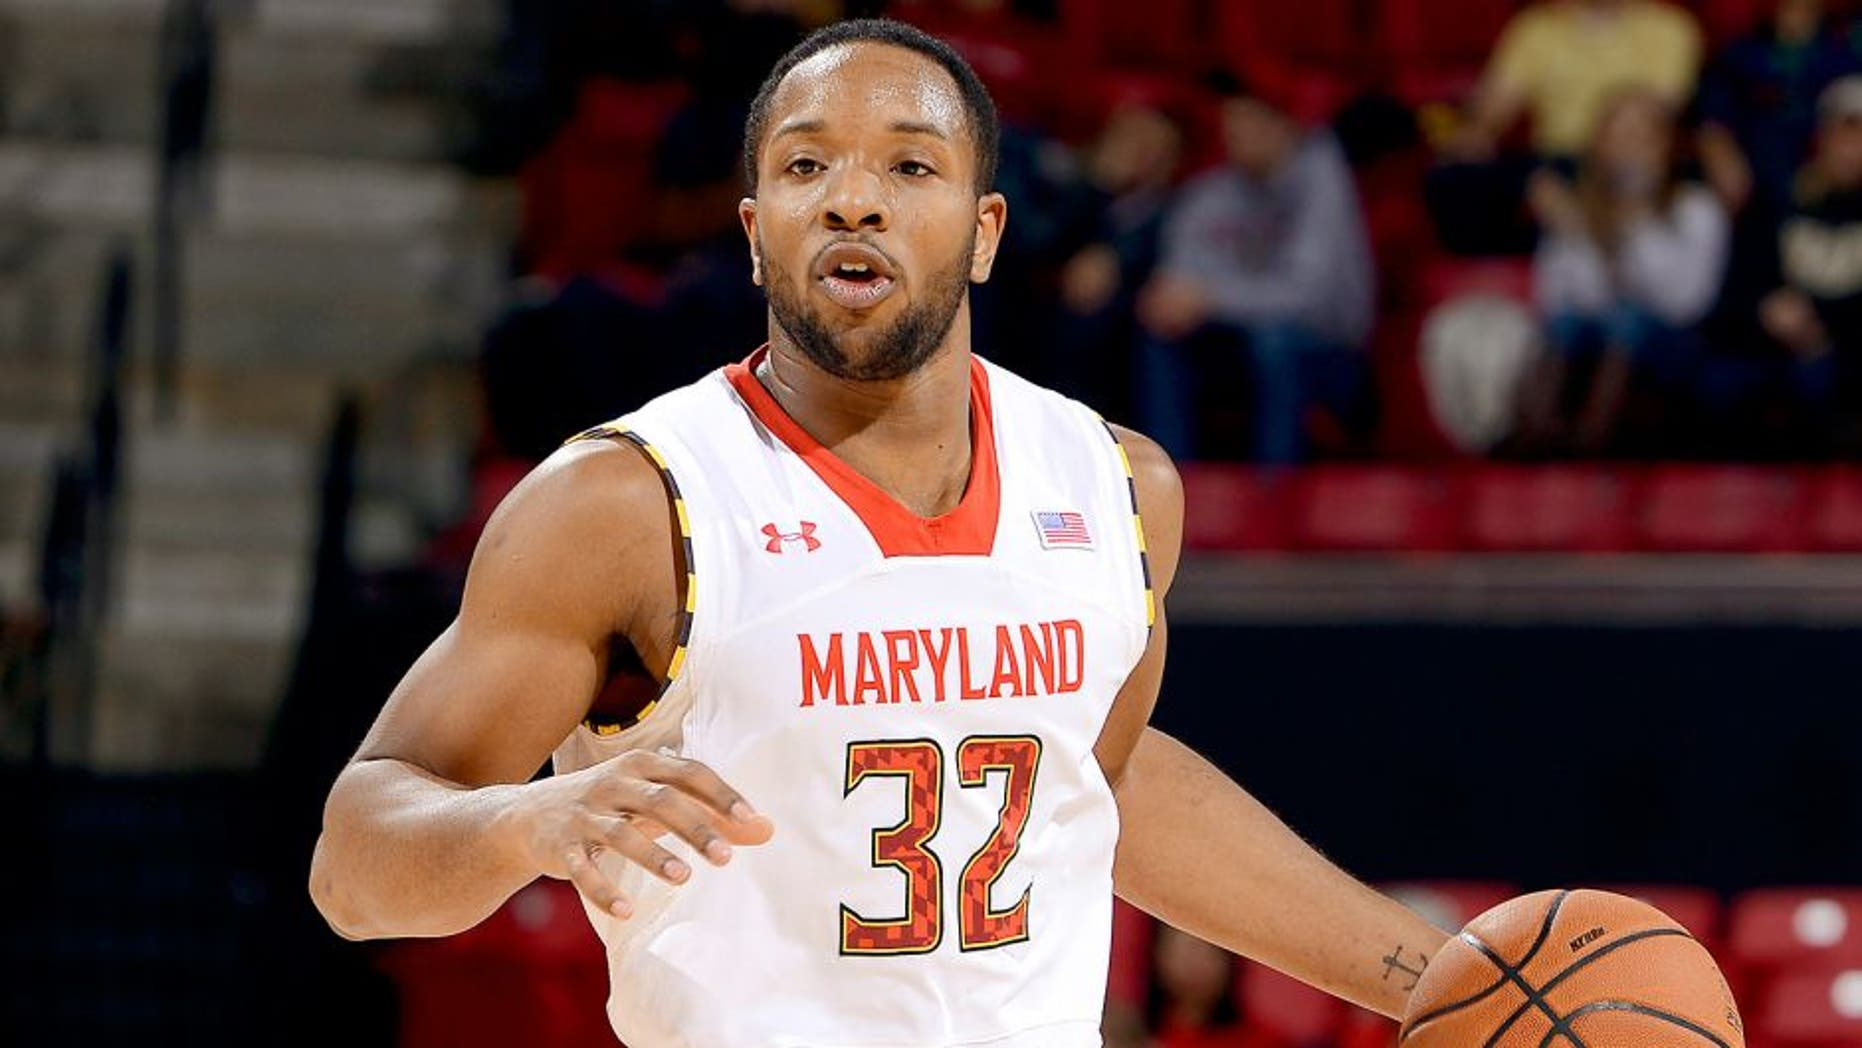 COLLEGE PARK, MD - FEBRUARY 18: Dez Wells #32 of the Maryland Terrapins handles the ball against the Wake Forest Demon Deacons at the Comcast Center on February 18, 2014 in College Park, Maryland. (Photo by G Fiume/Maryland Terrapins/Getty Images) *** Local Caption *** Dez Wells